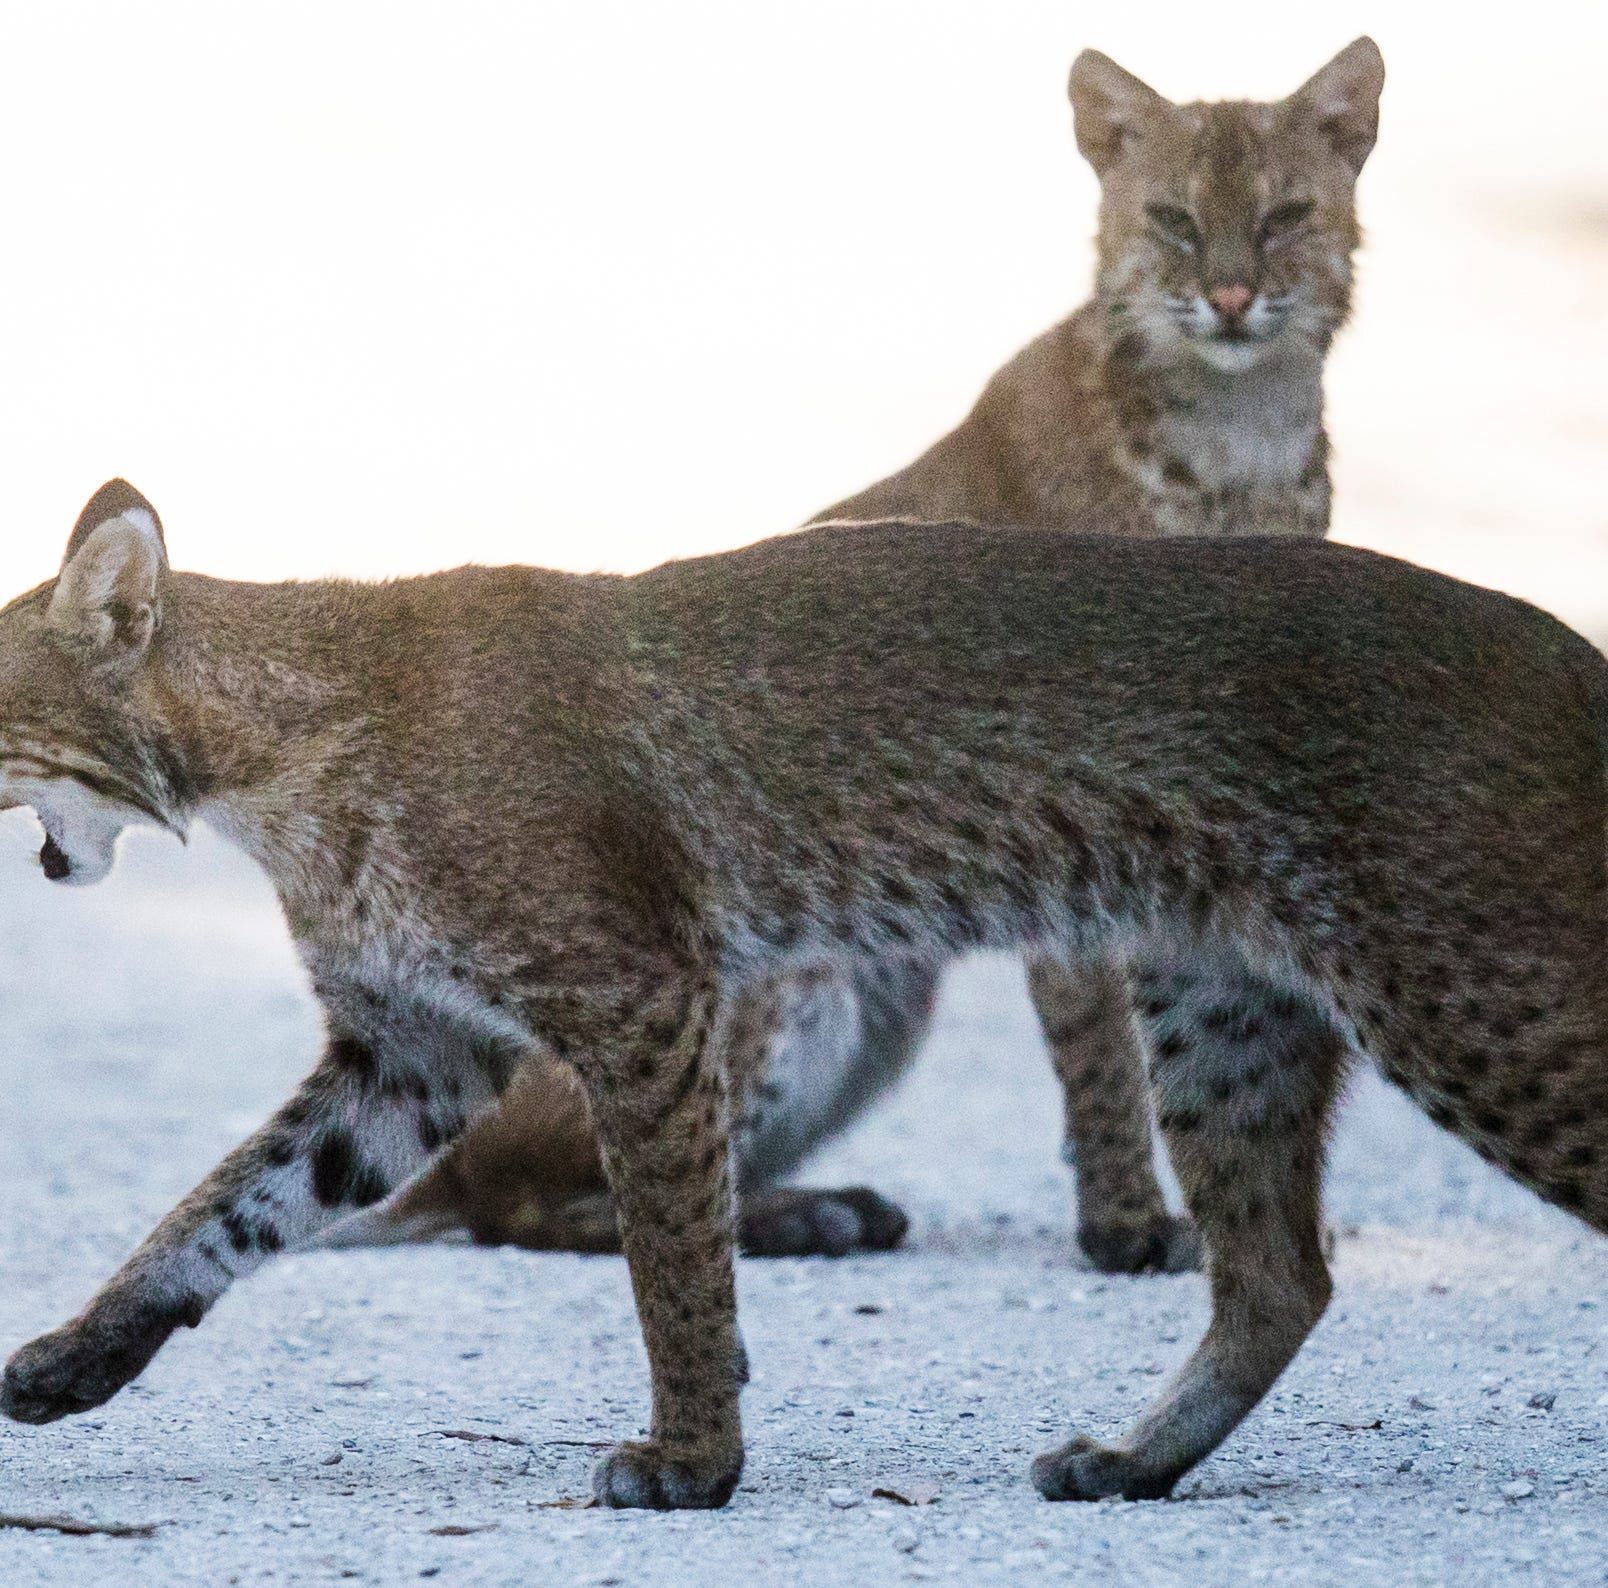 Two bobcats seen wandering around Sanibel Lighthouse beach area, likely hunting rabbits